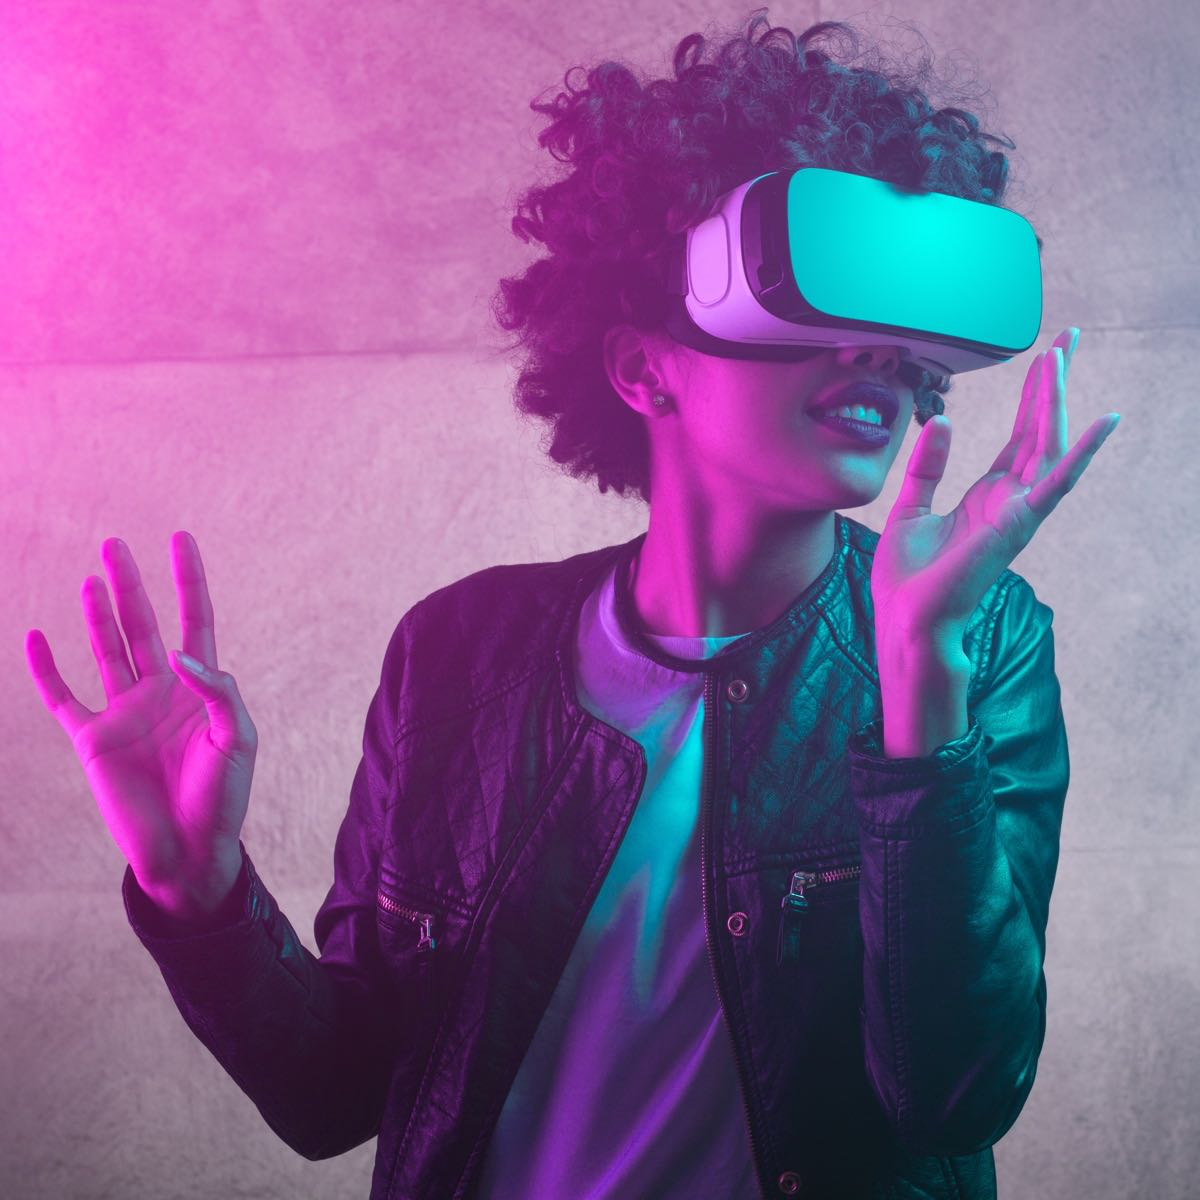 VR Is the Use of Computer Technology to Create a Simulated Environment.